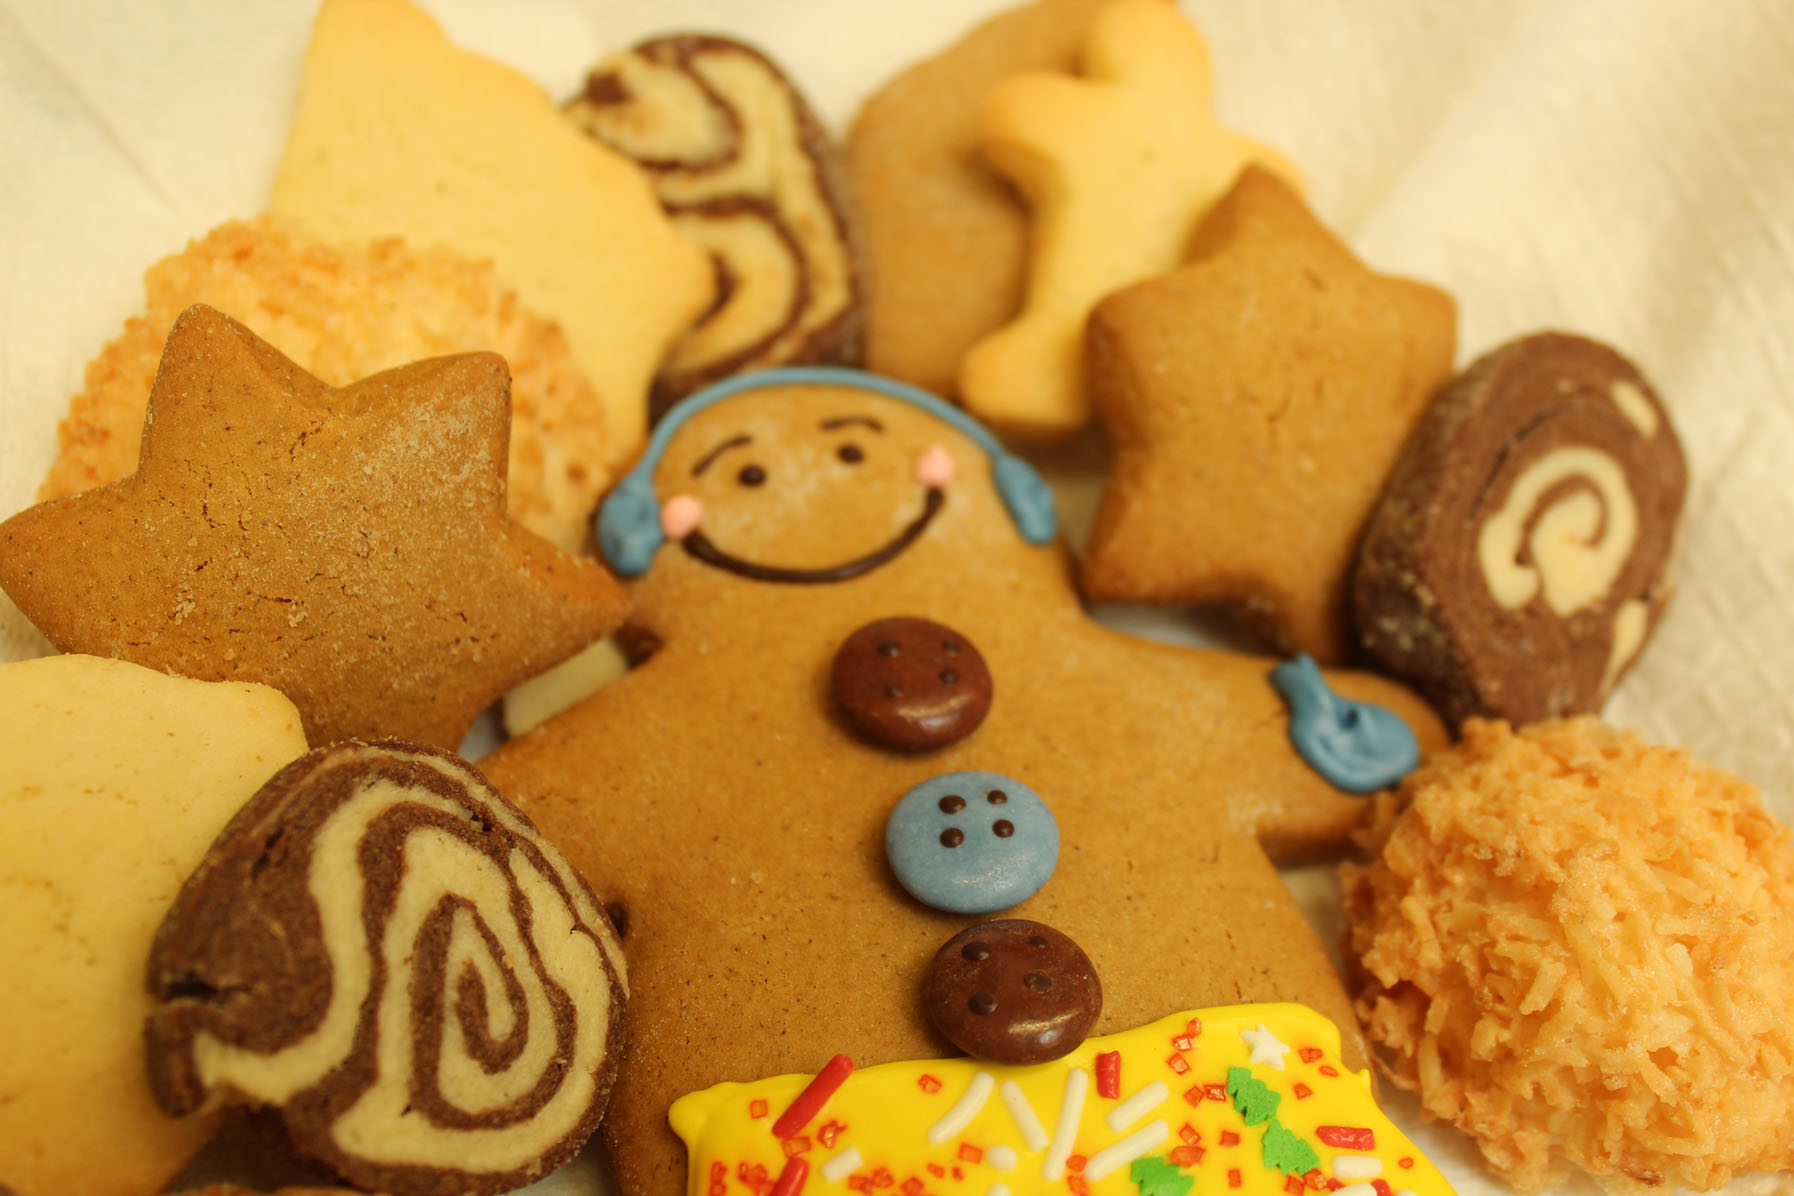 Holiday Cookies  $6.00 per doz / $27 small / $ 65.00 large  Large Gingerbread Cookies (Gingerbread man) $4.5 [Photo courtesy: Kaori Fujishima]